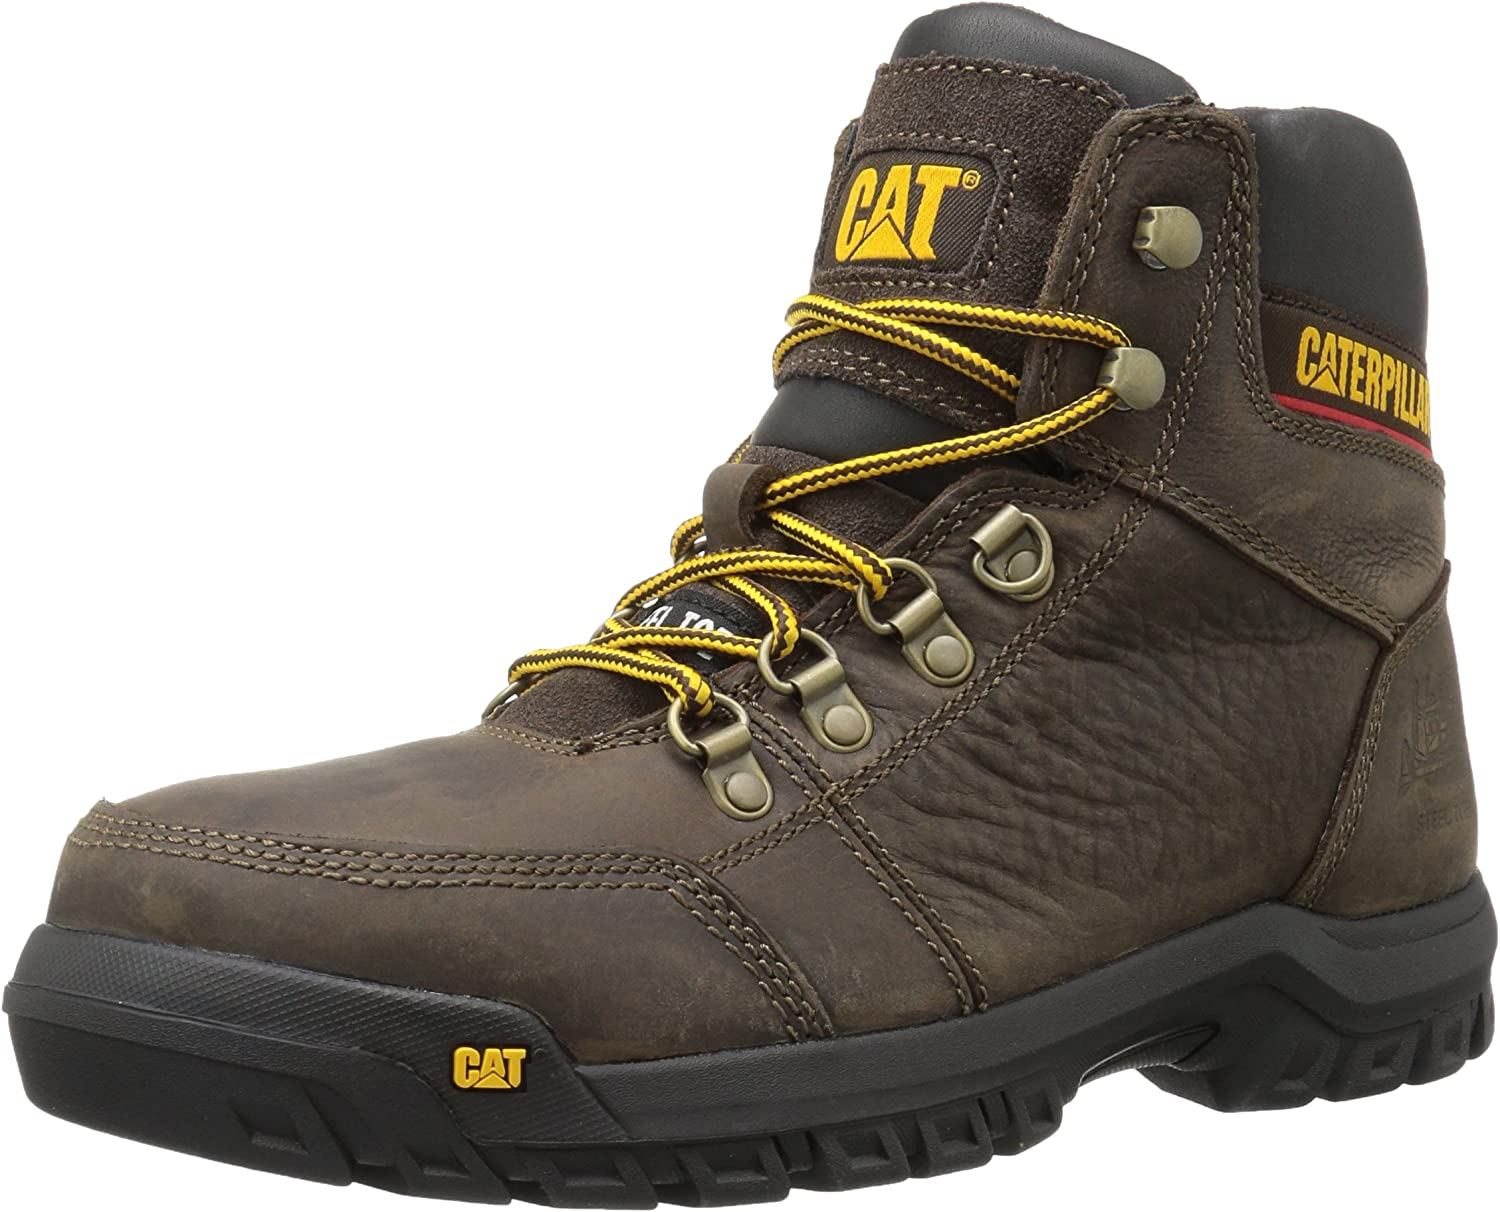 B01FTFMQU2 Caterpillar Men's Outline Steel Toe Work Boot, Seal Brown, 9.5 W US 81DKQQguaHL.UL1500_